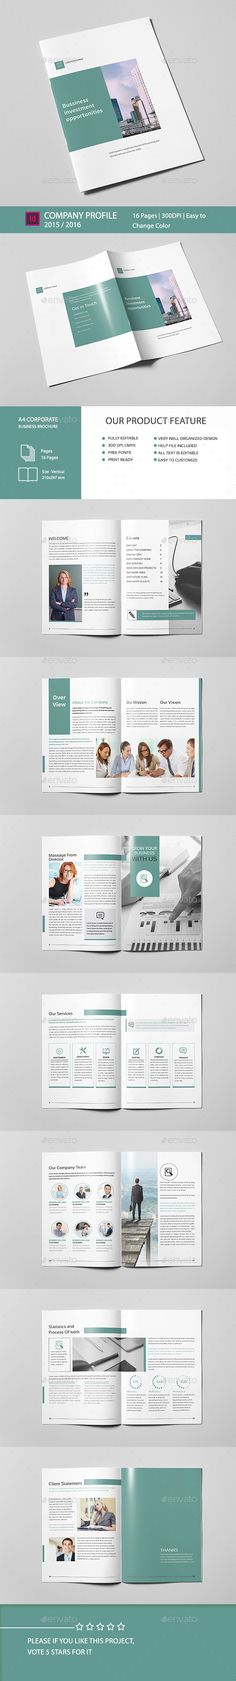 Creative Company Profile on Behance u2026 Pinteresu2026 - it company profile template